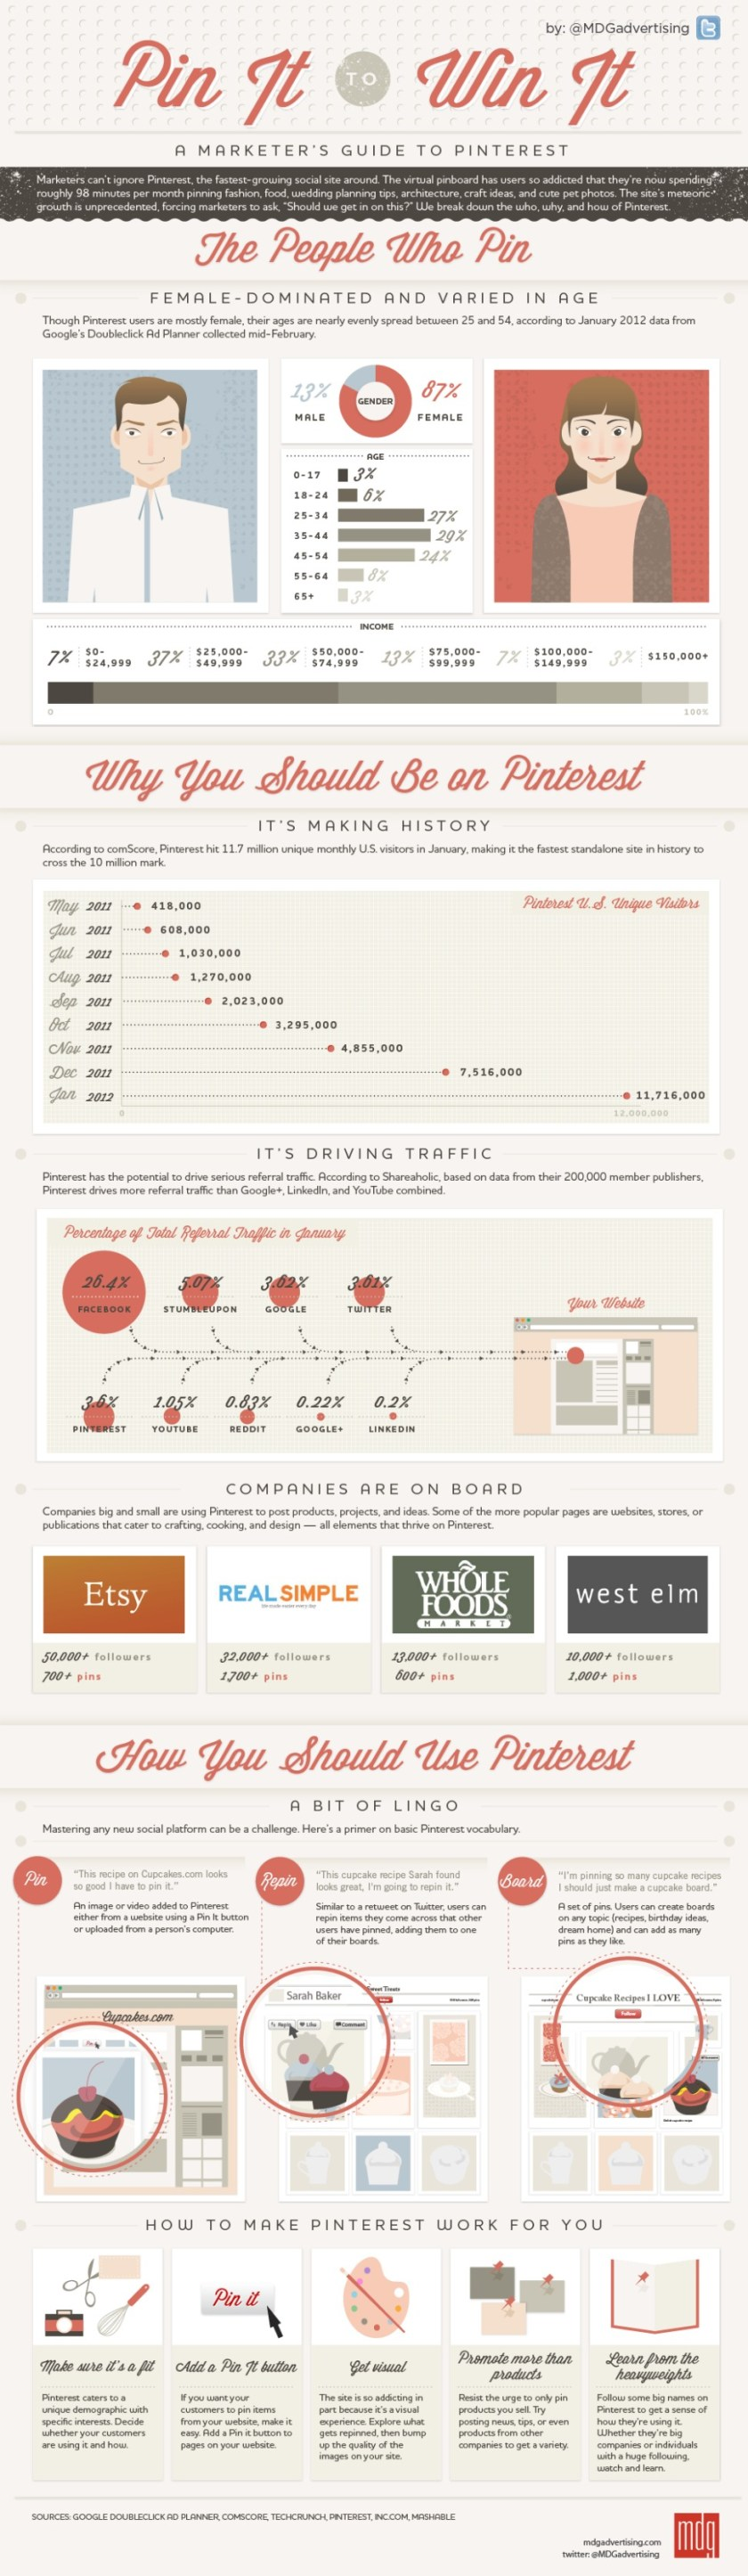 Infografik: The Marketer's Guide to Pinterest (mashable.com)